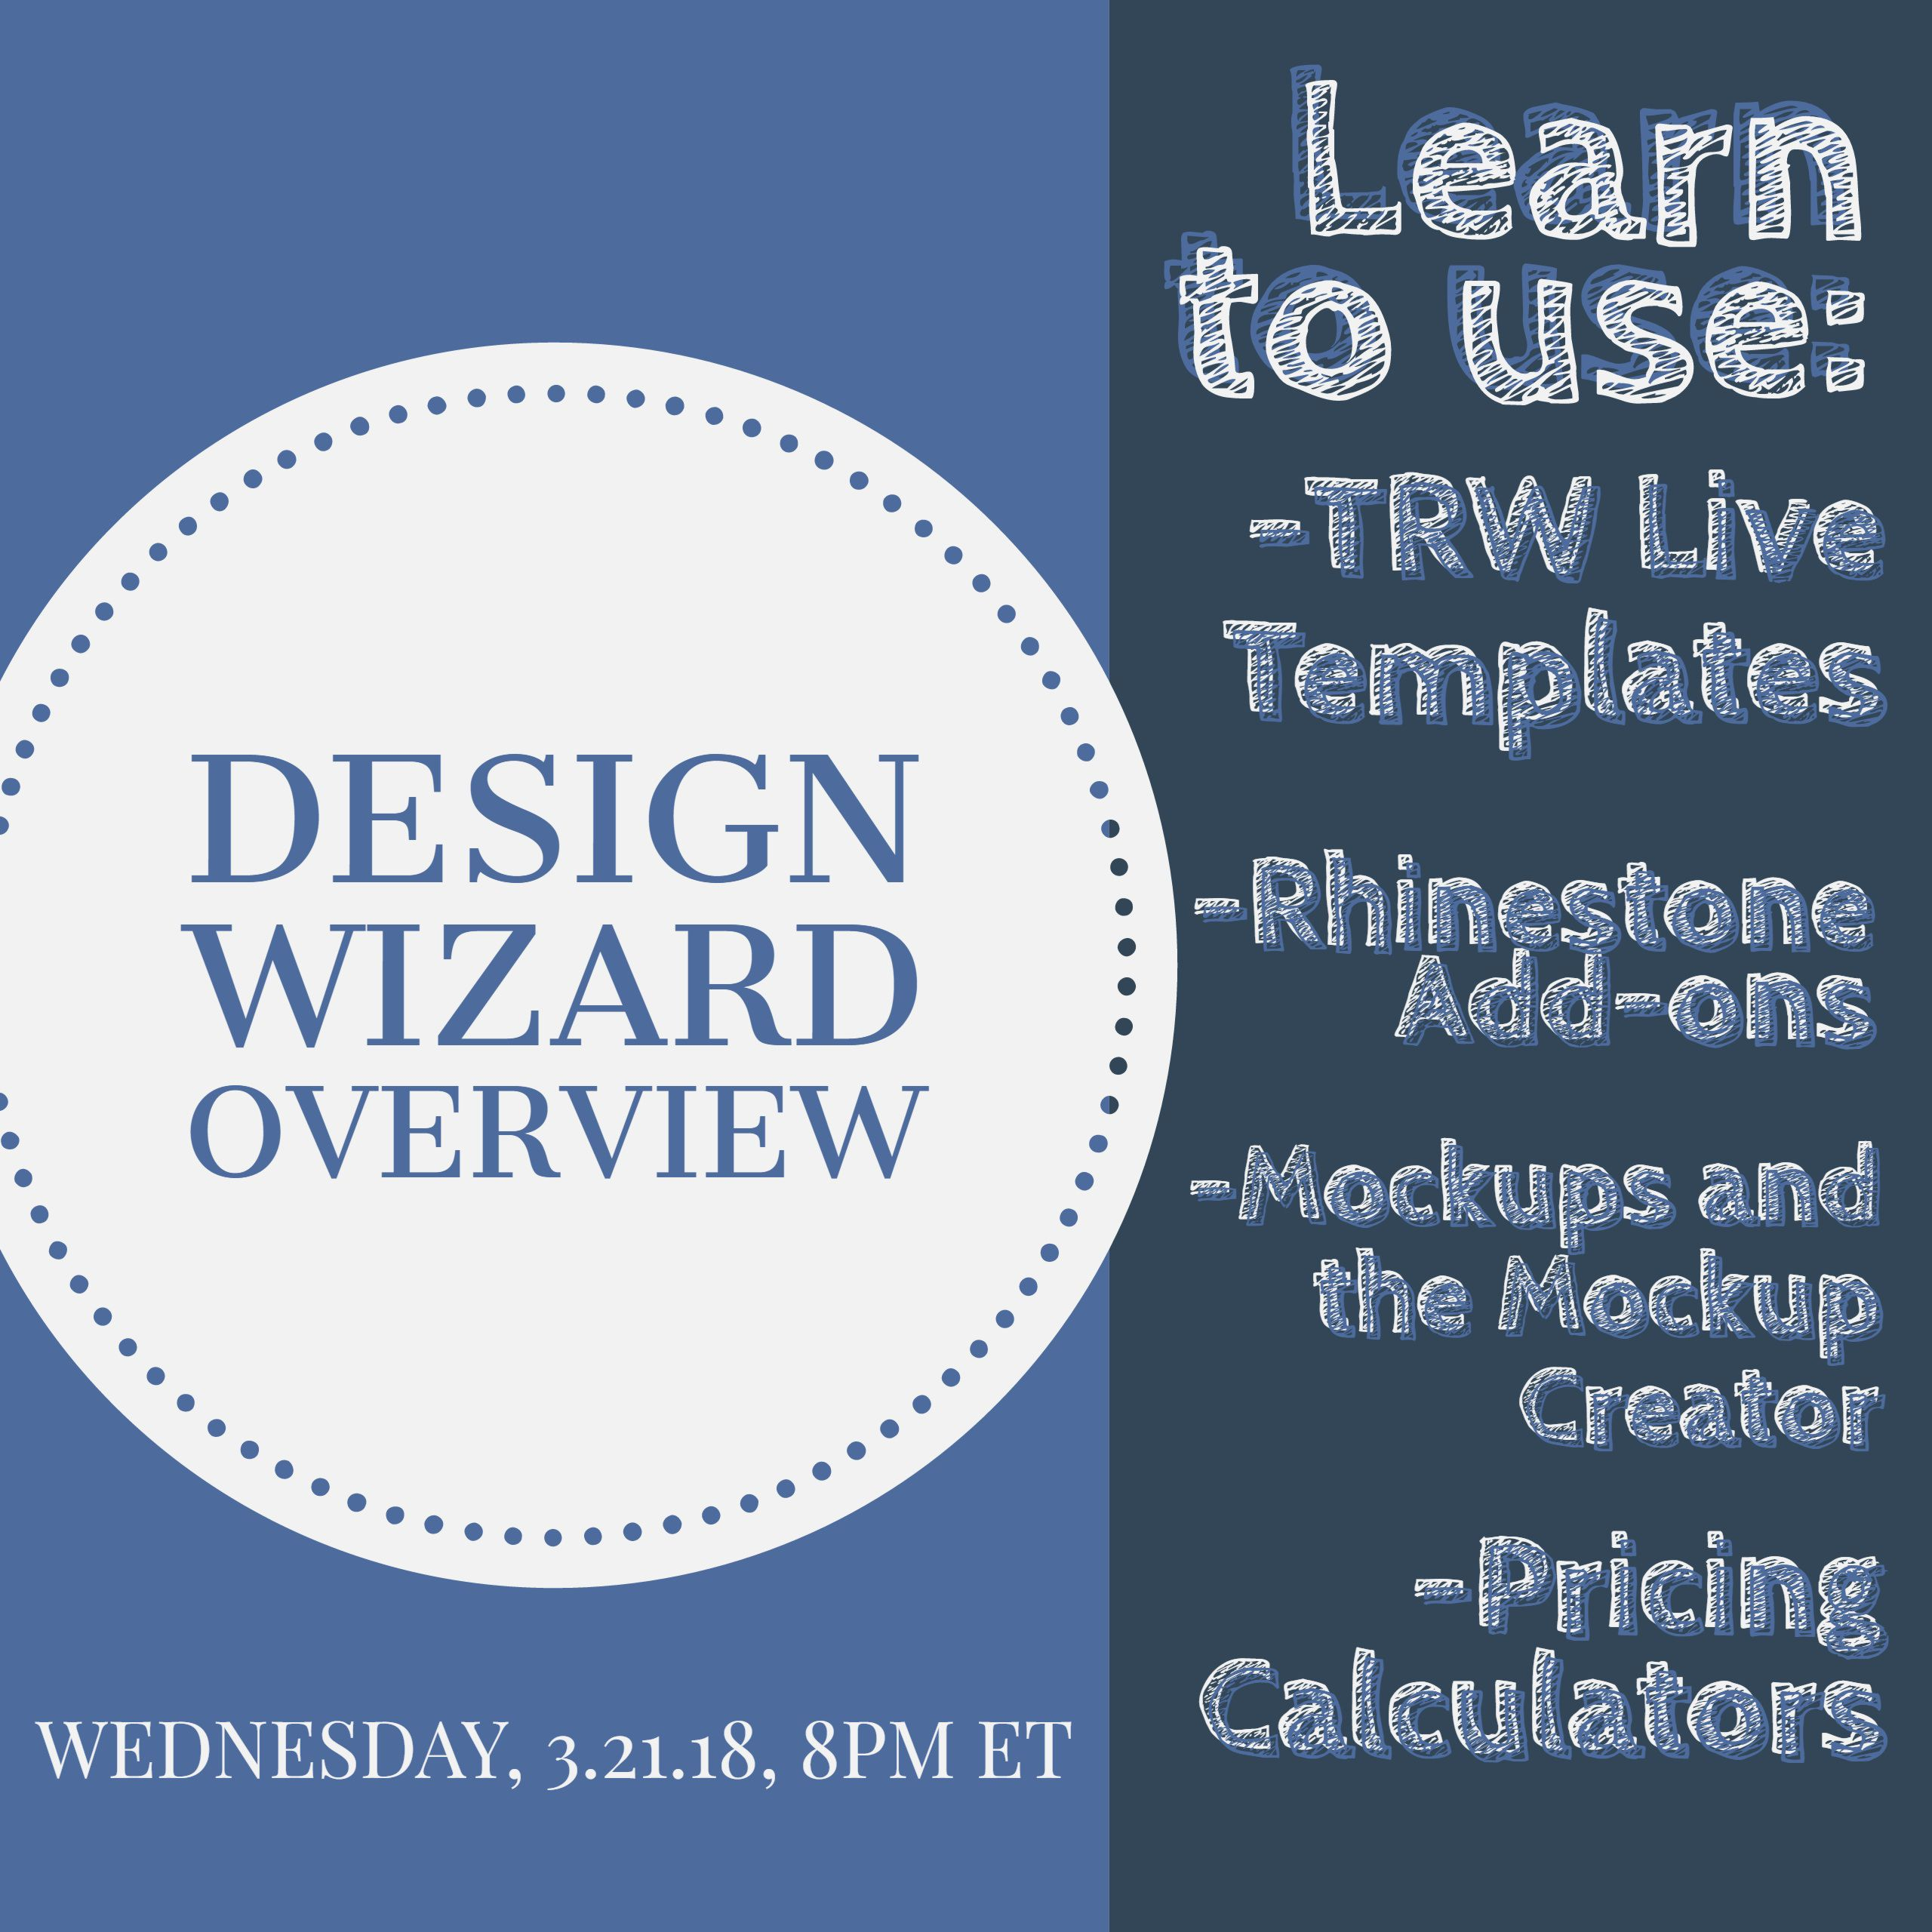 3/21/18 Design Wizard Overview